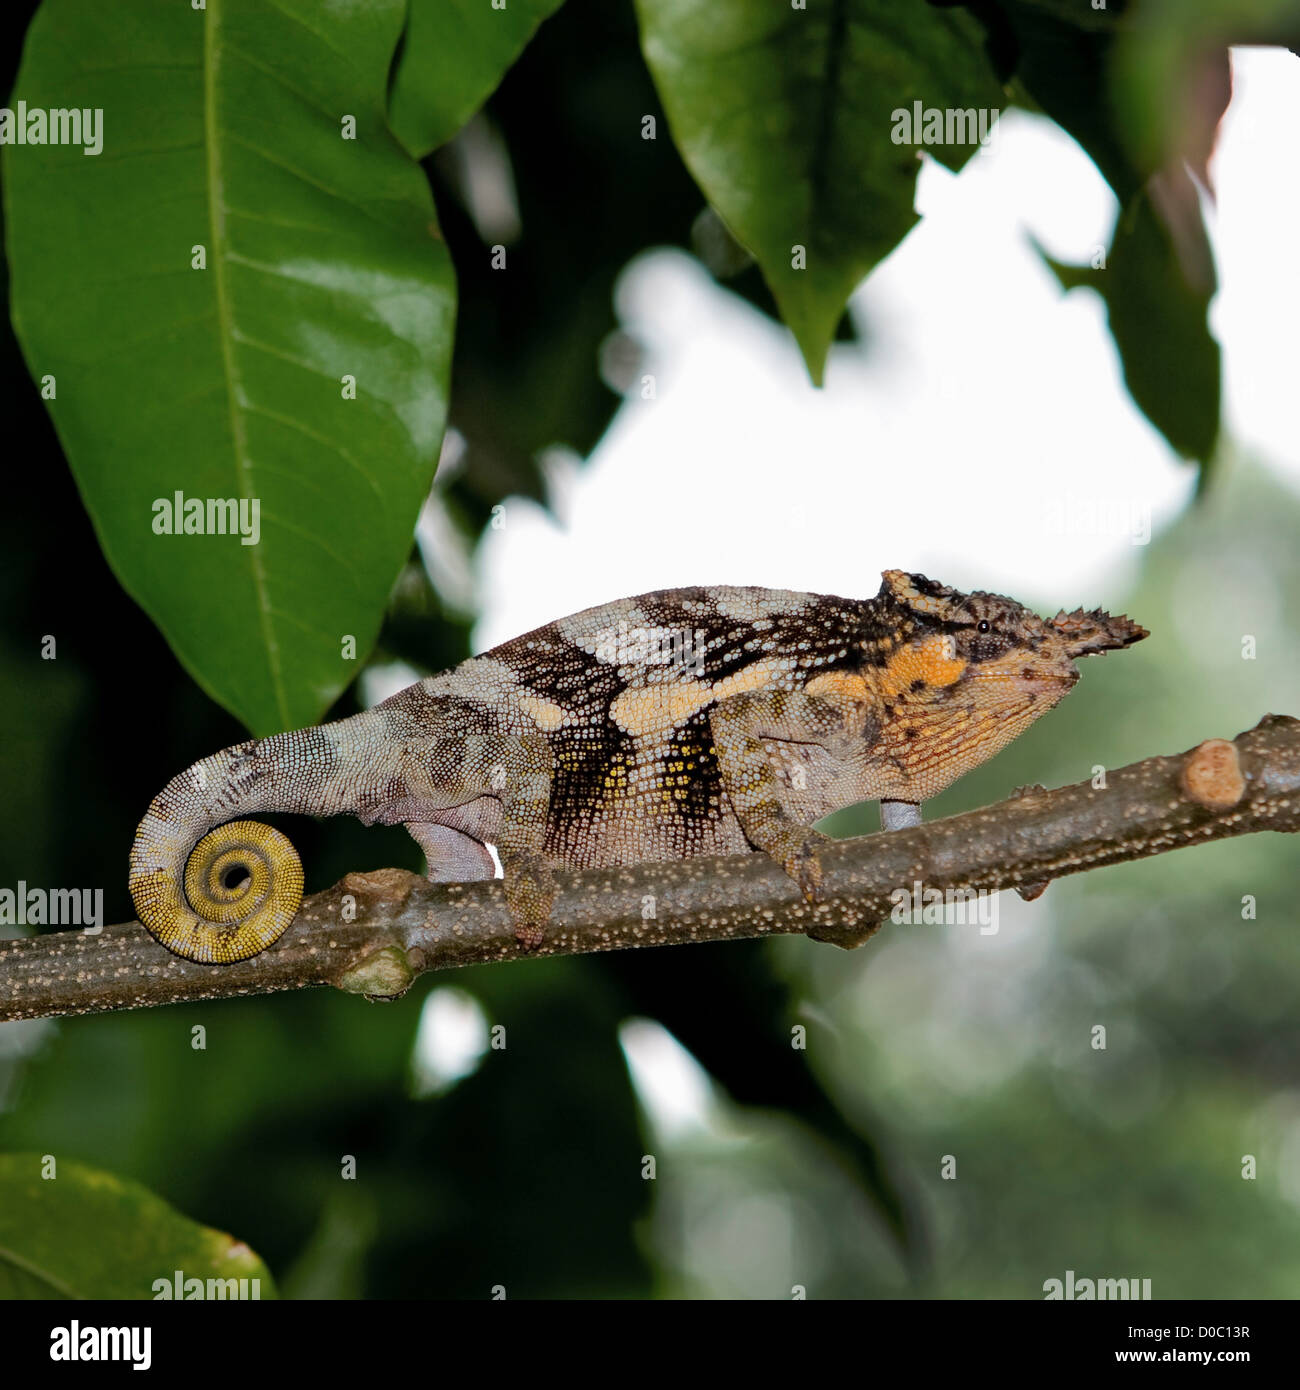 Fischers chameleon stock photos fischers chameleon stock images two horned chameleon on a branch stock image thecheapjerseys Images